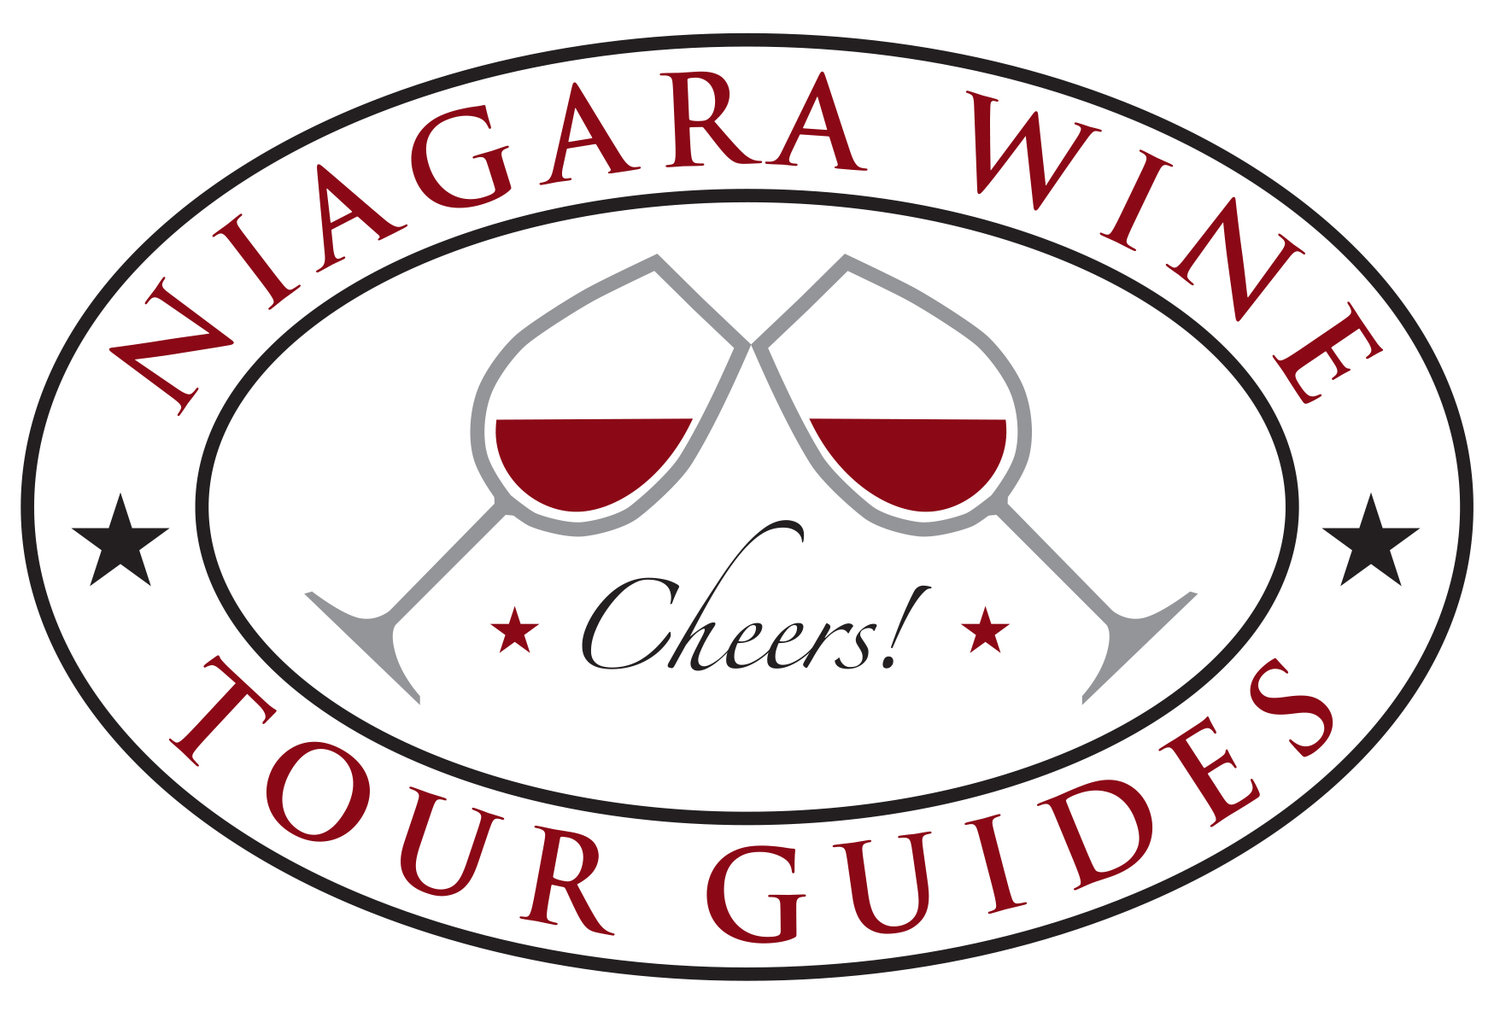 Niagara Wine Tour Guides / Winery Tours in Niagara on the Lake